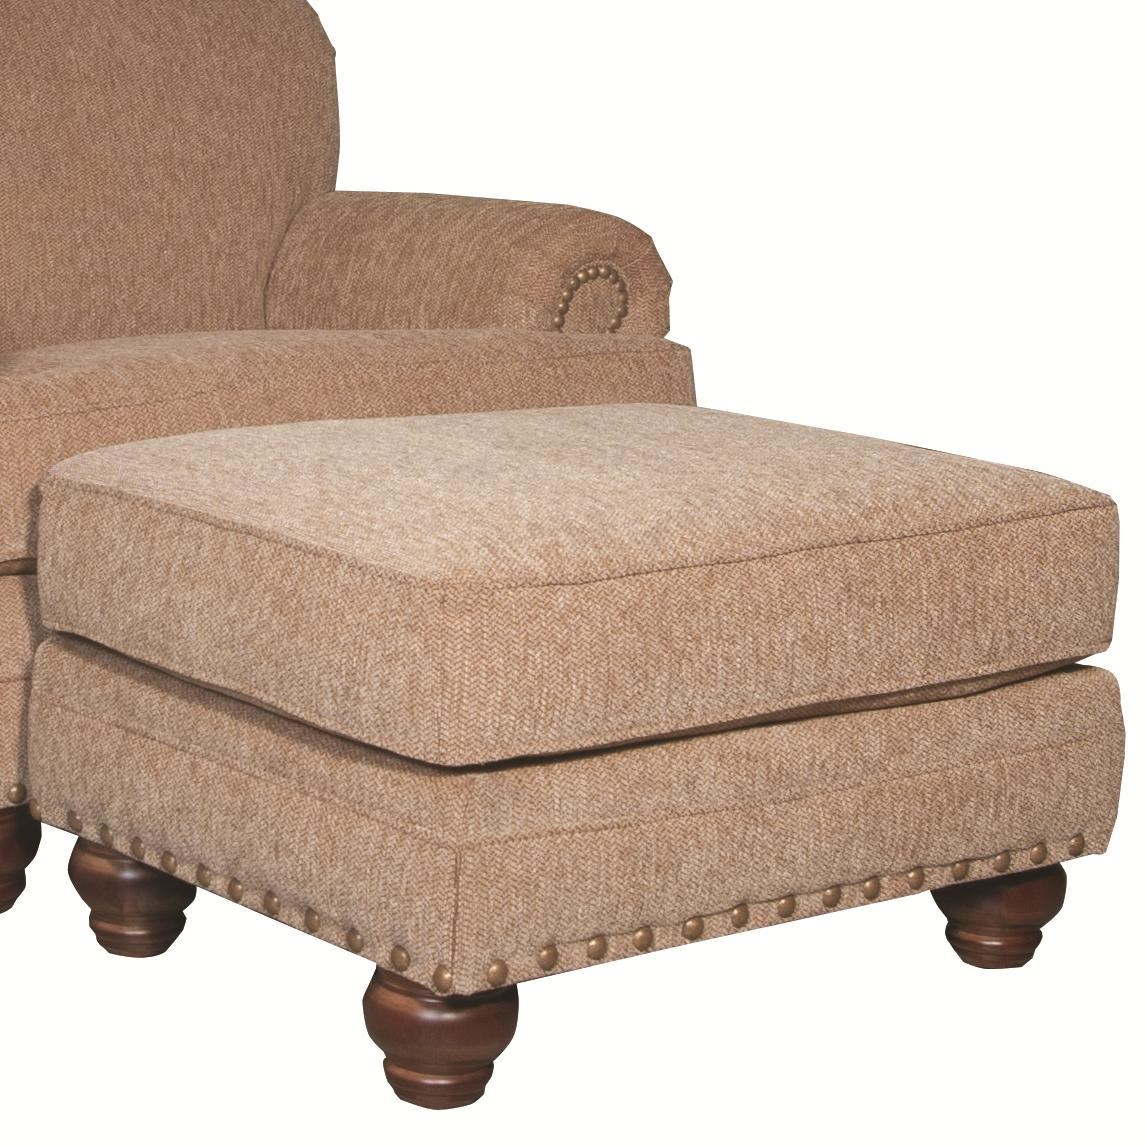 Traditional Ottoman with Nailhead Studs